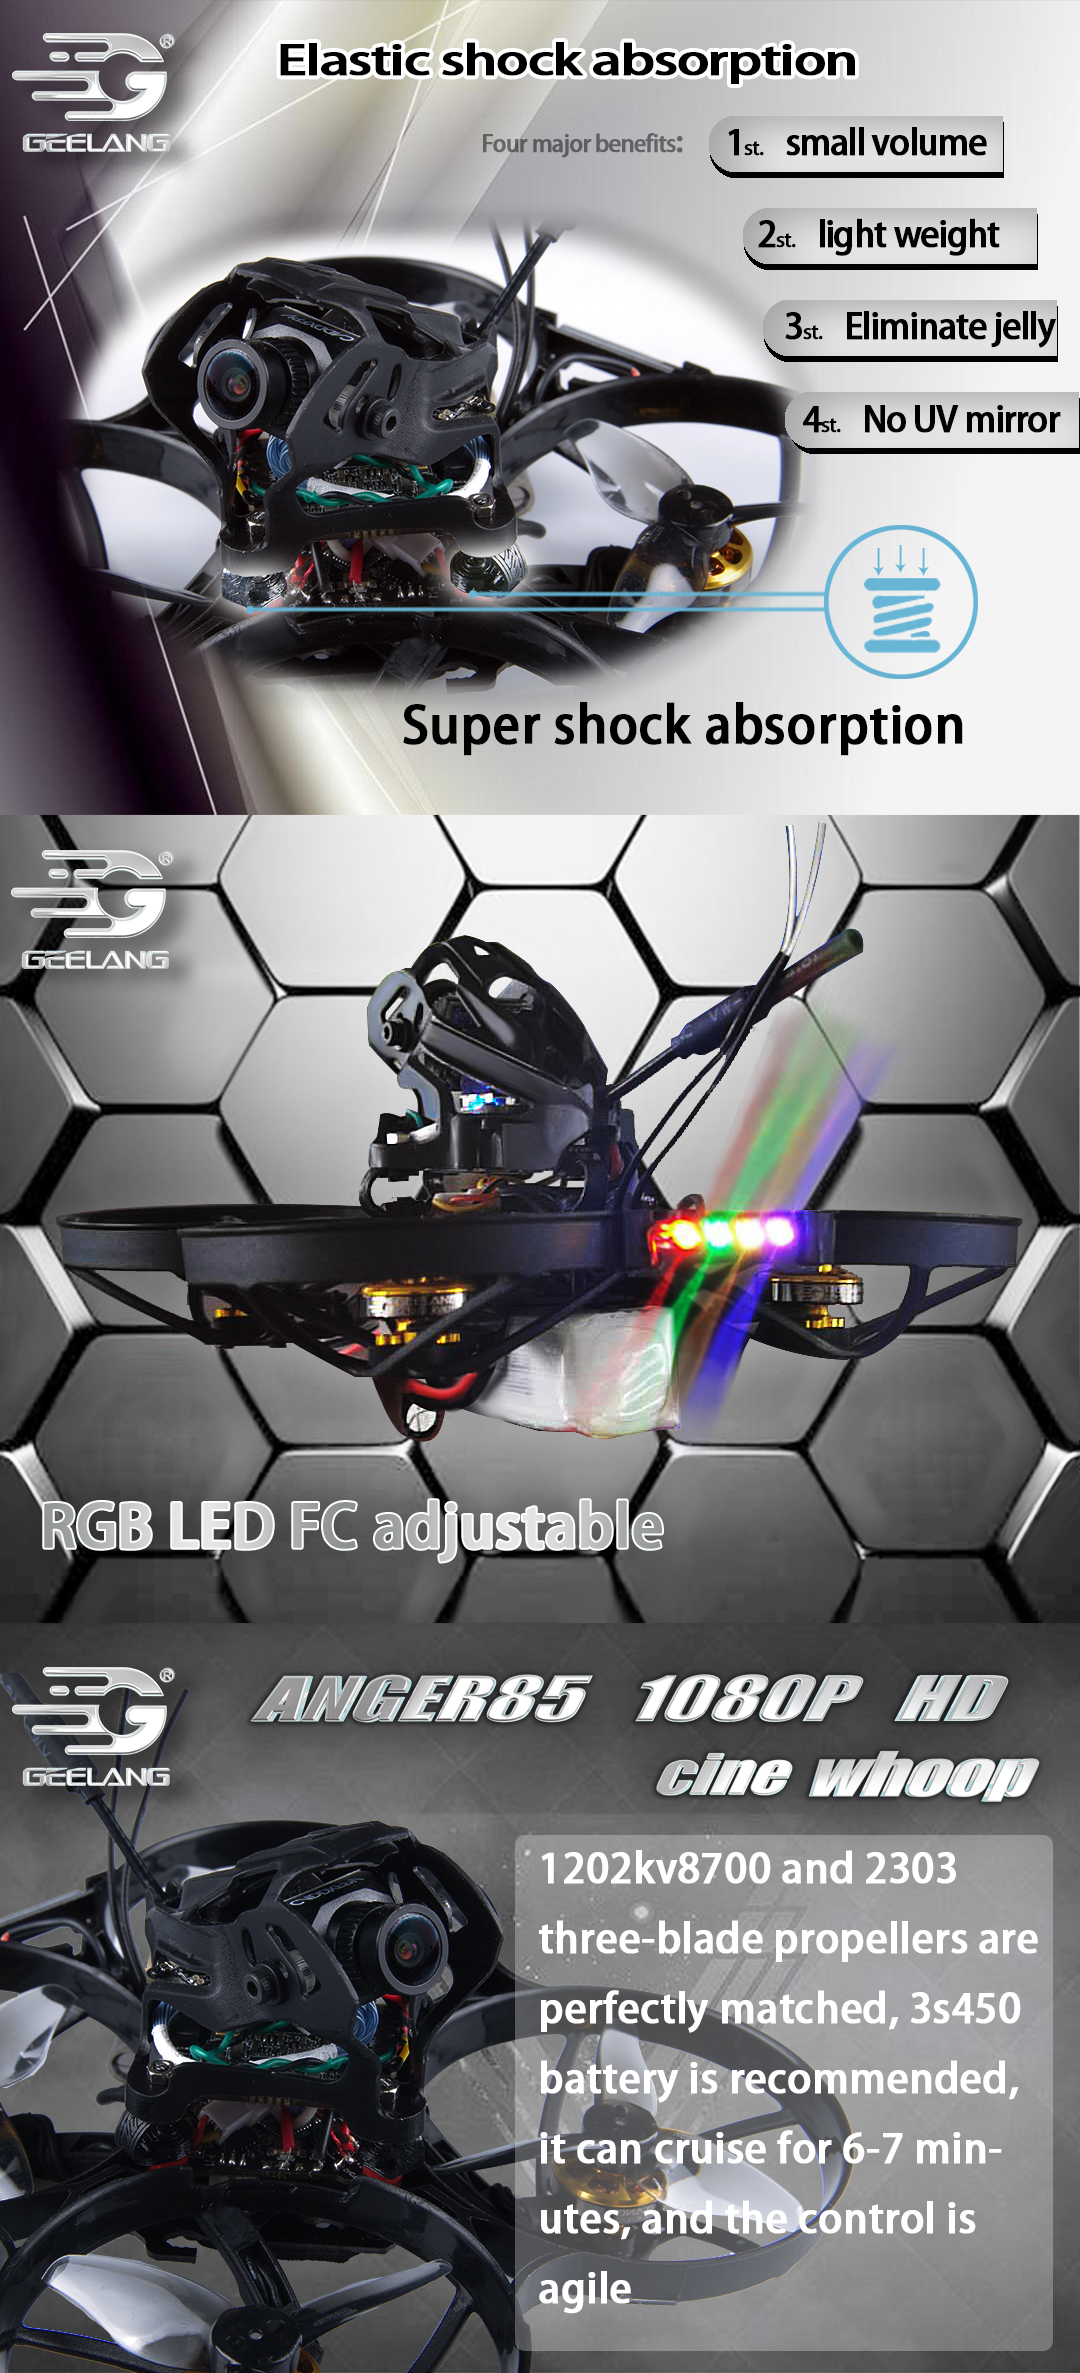 GEELANG Anger 85X 1080P HD 85mm F4 2-3S 2 Inch CineWhoop FPV Racing Drone PNP BNF w/ 5.8G 25-200mW VTX Caddx Baby Turtle Camera